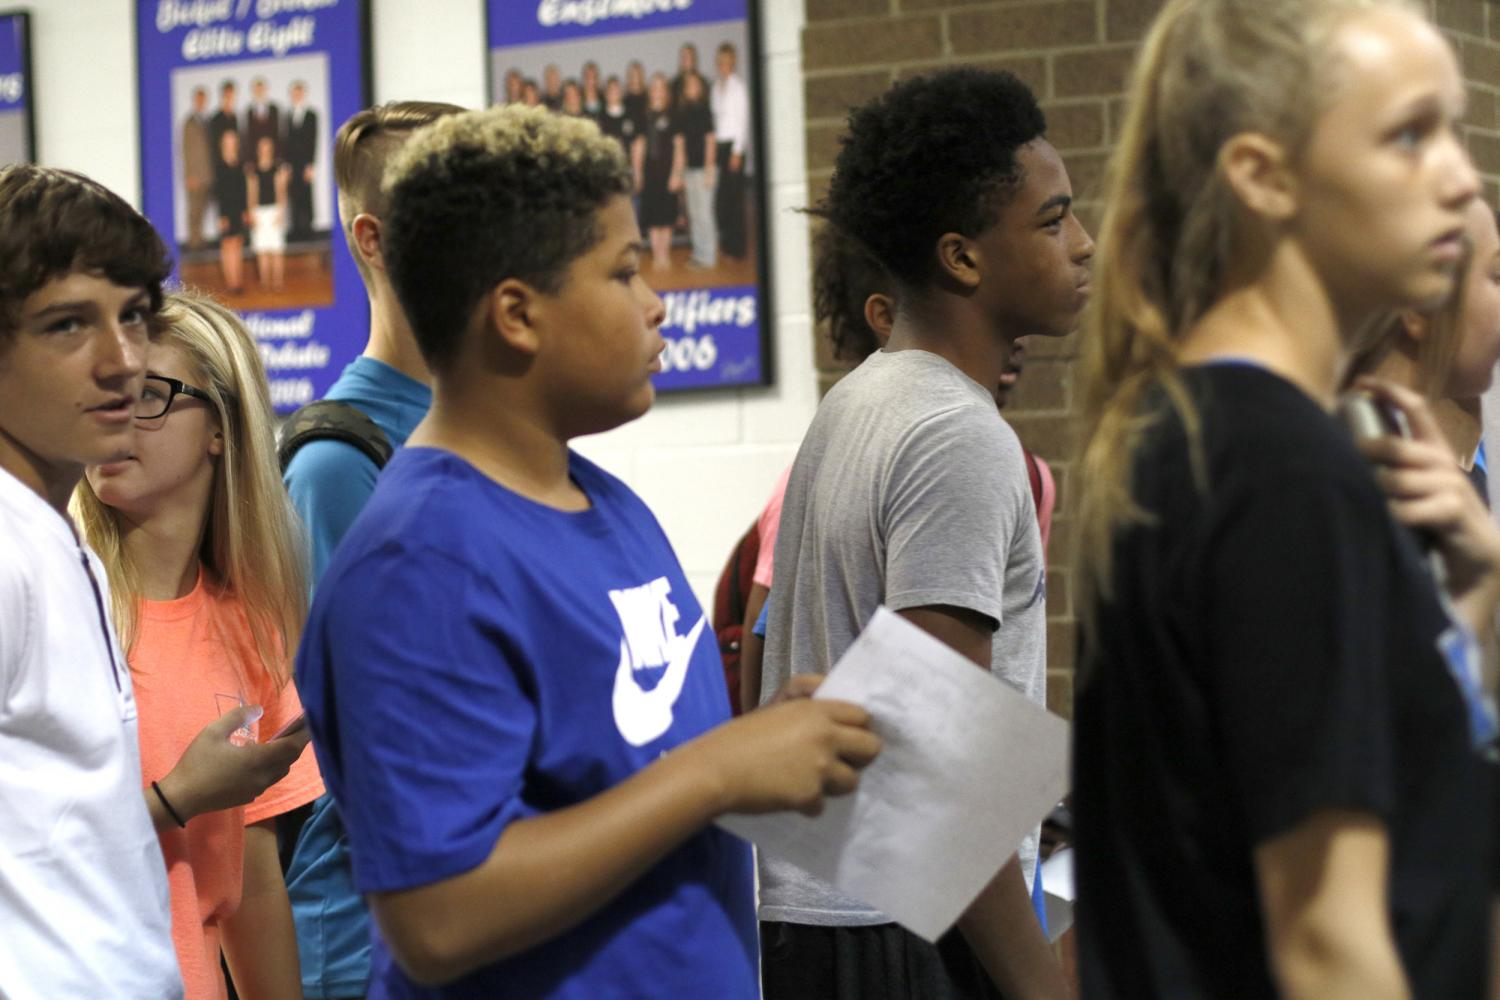 Fish Camp Speakers Inform New Freshmen About Upcoming School Year